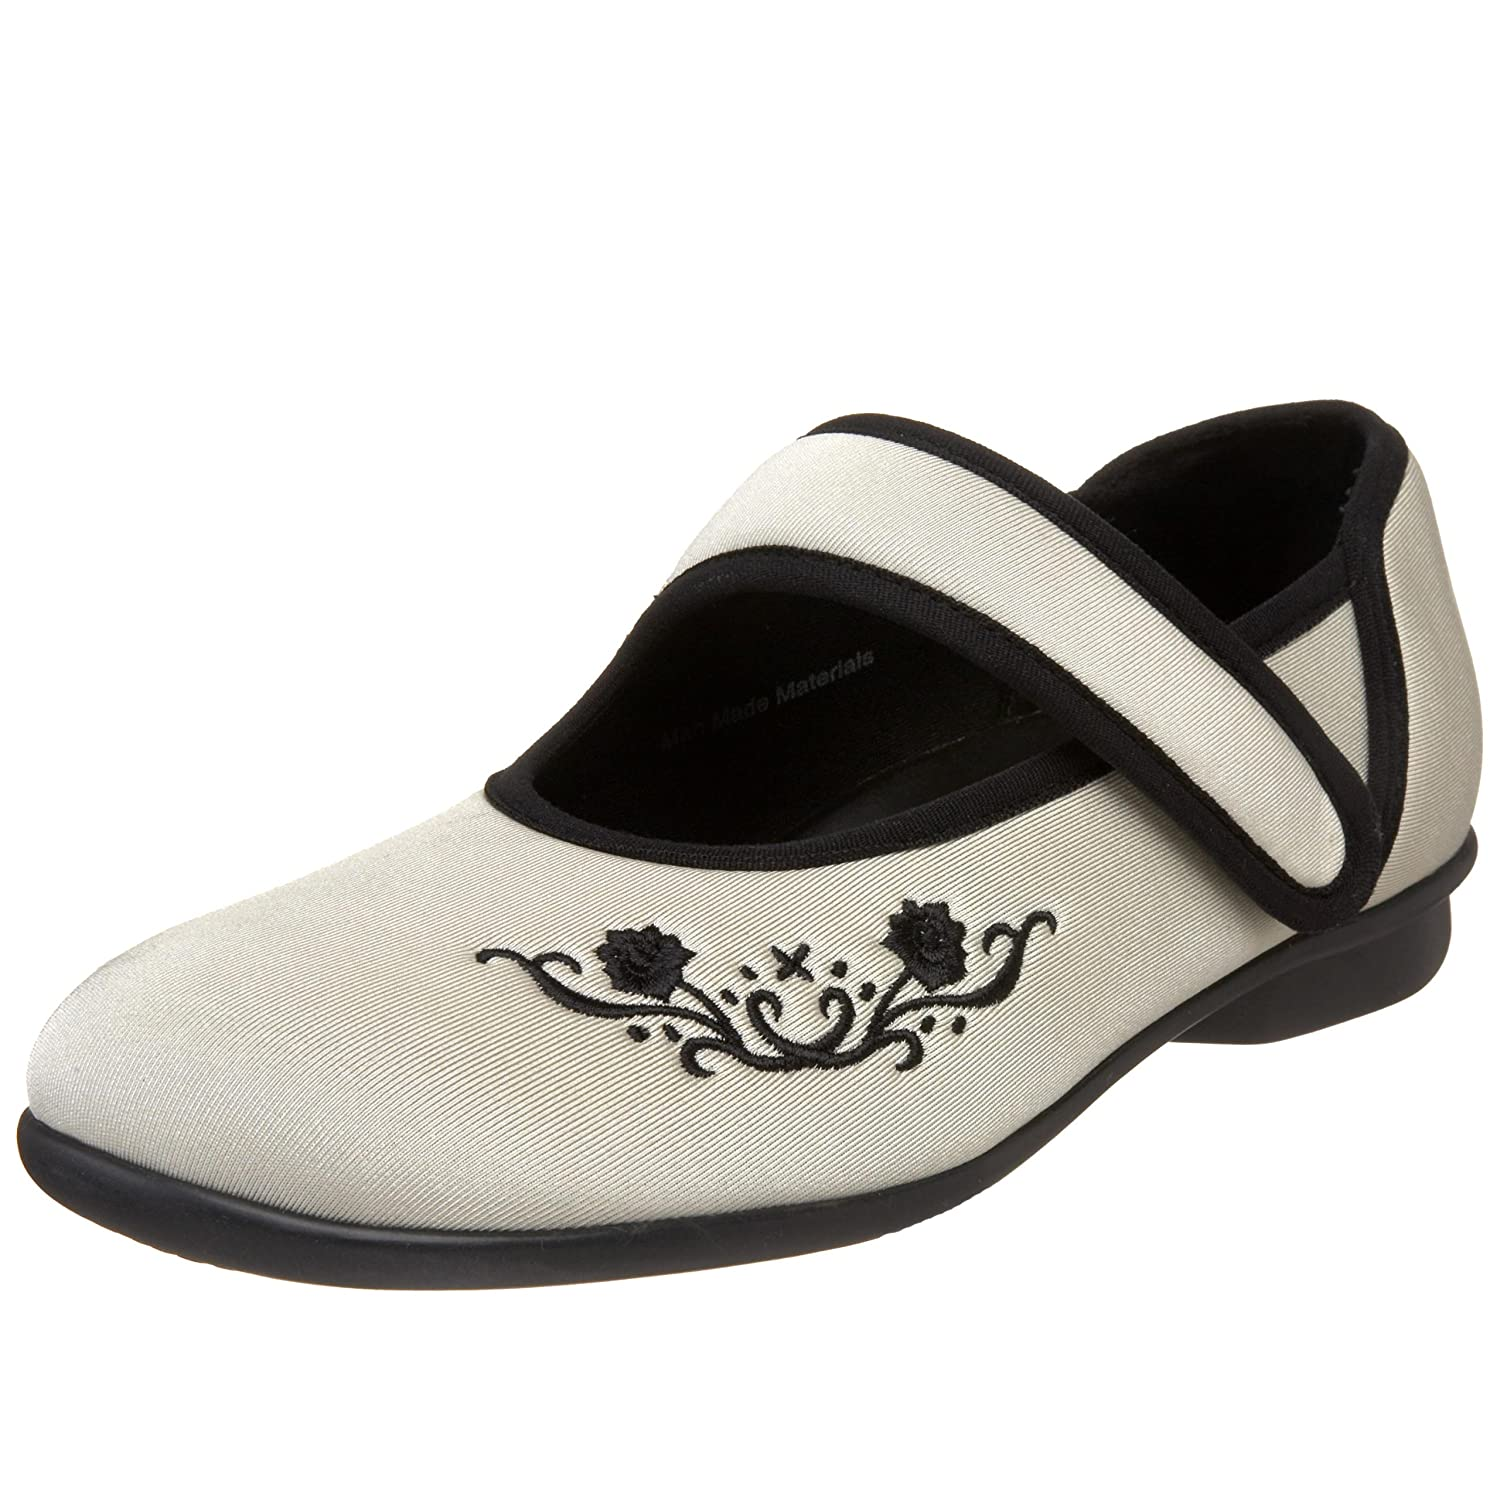 Drew Shoe Women's Jada Mary Jane B002VPCK14 8.5 W US|Ivory Stretch